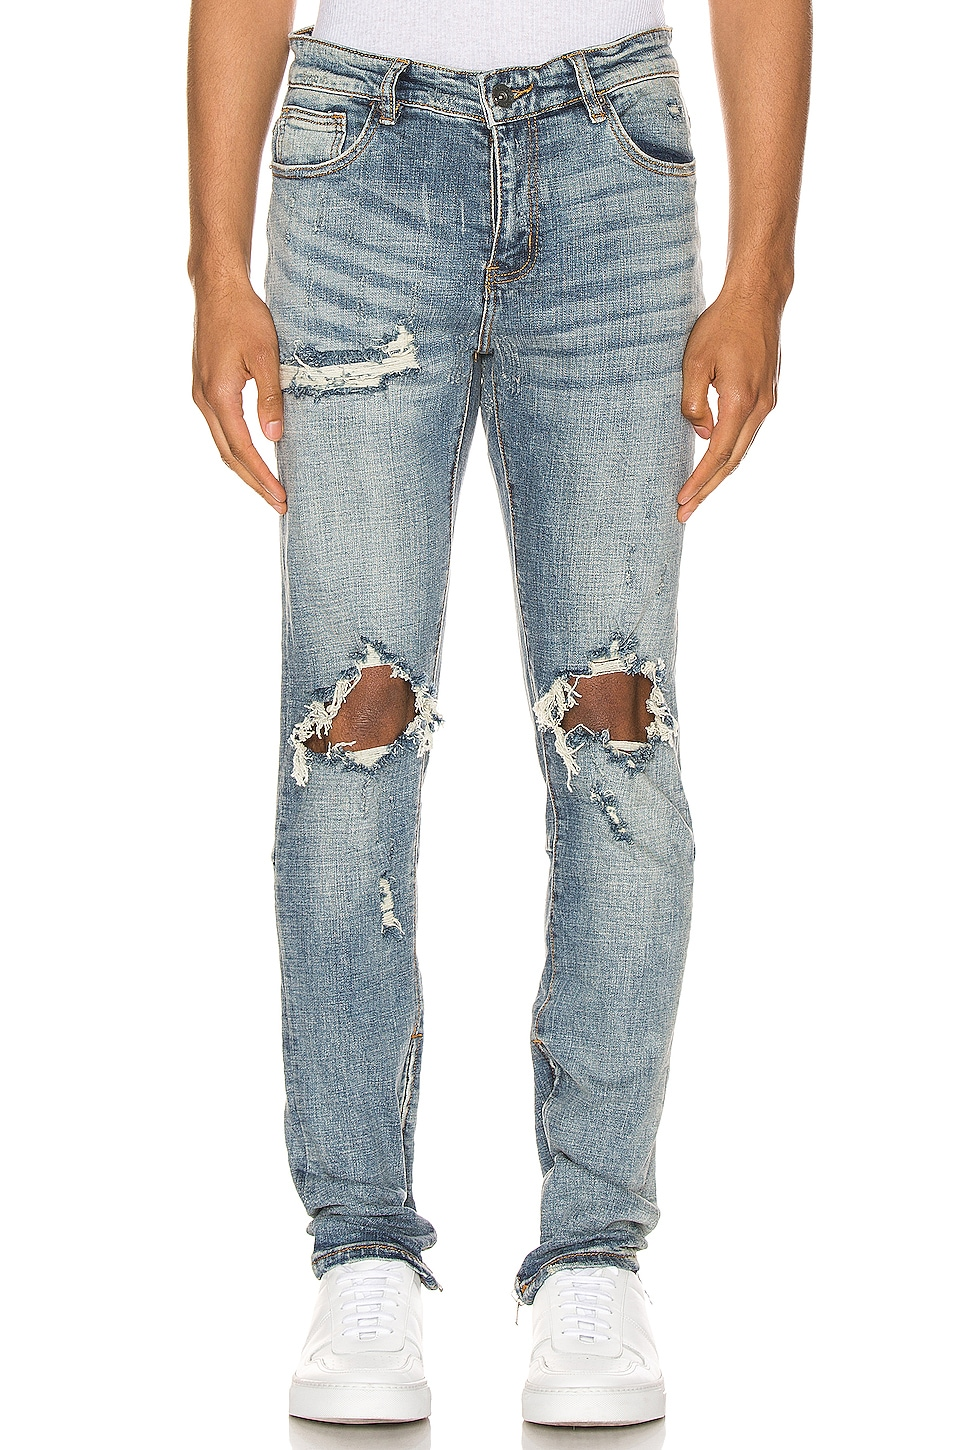 Crysp Denim VAQUEROS DENIM